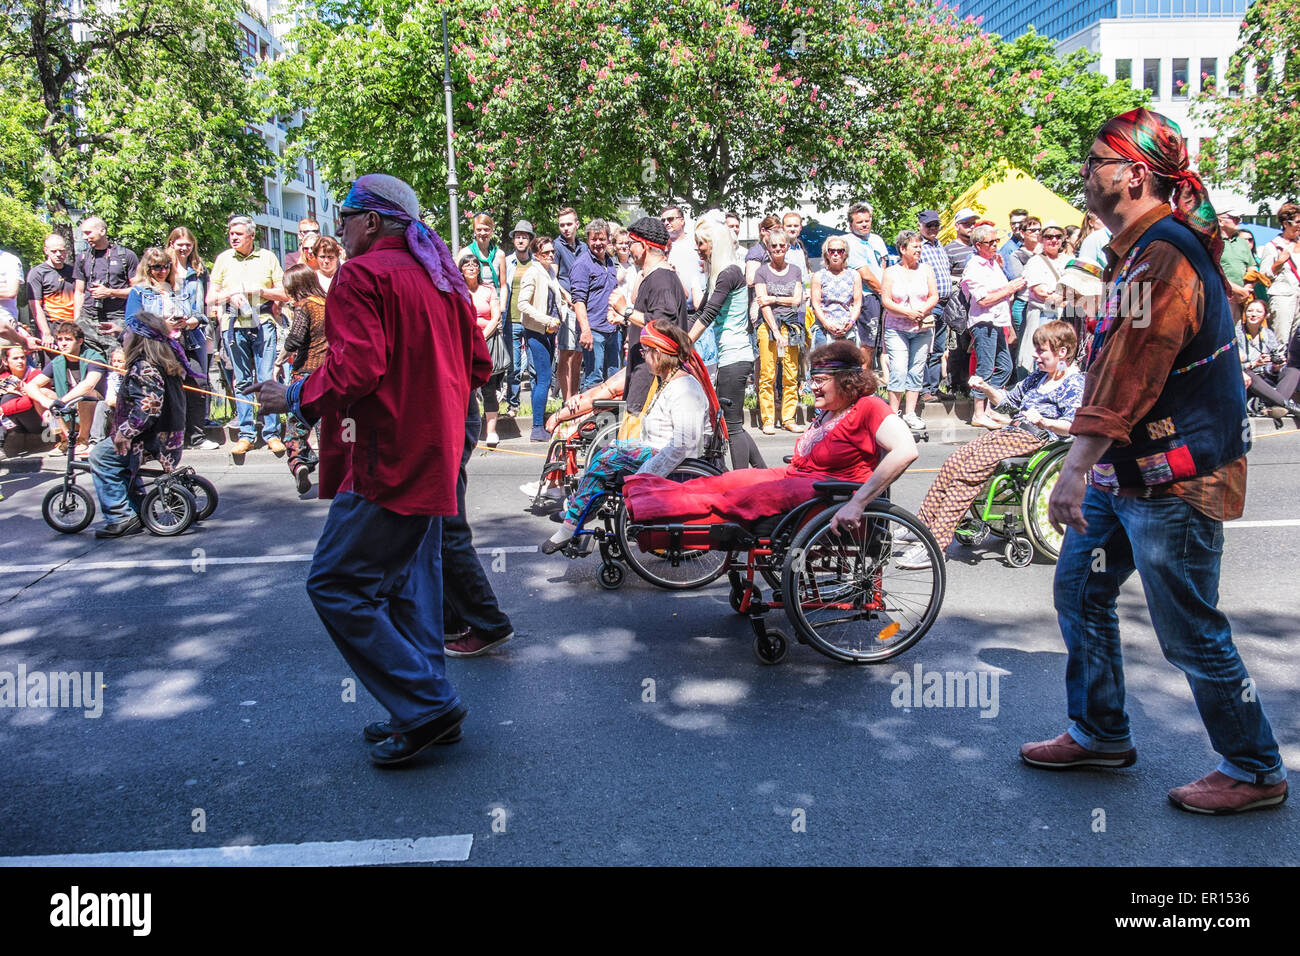 Kreuzberg, Berlin, Germany, 24th May 2015. Berlin celebrates its cultural diversity at  the Carnival of Cultures - Stock Image